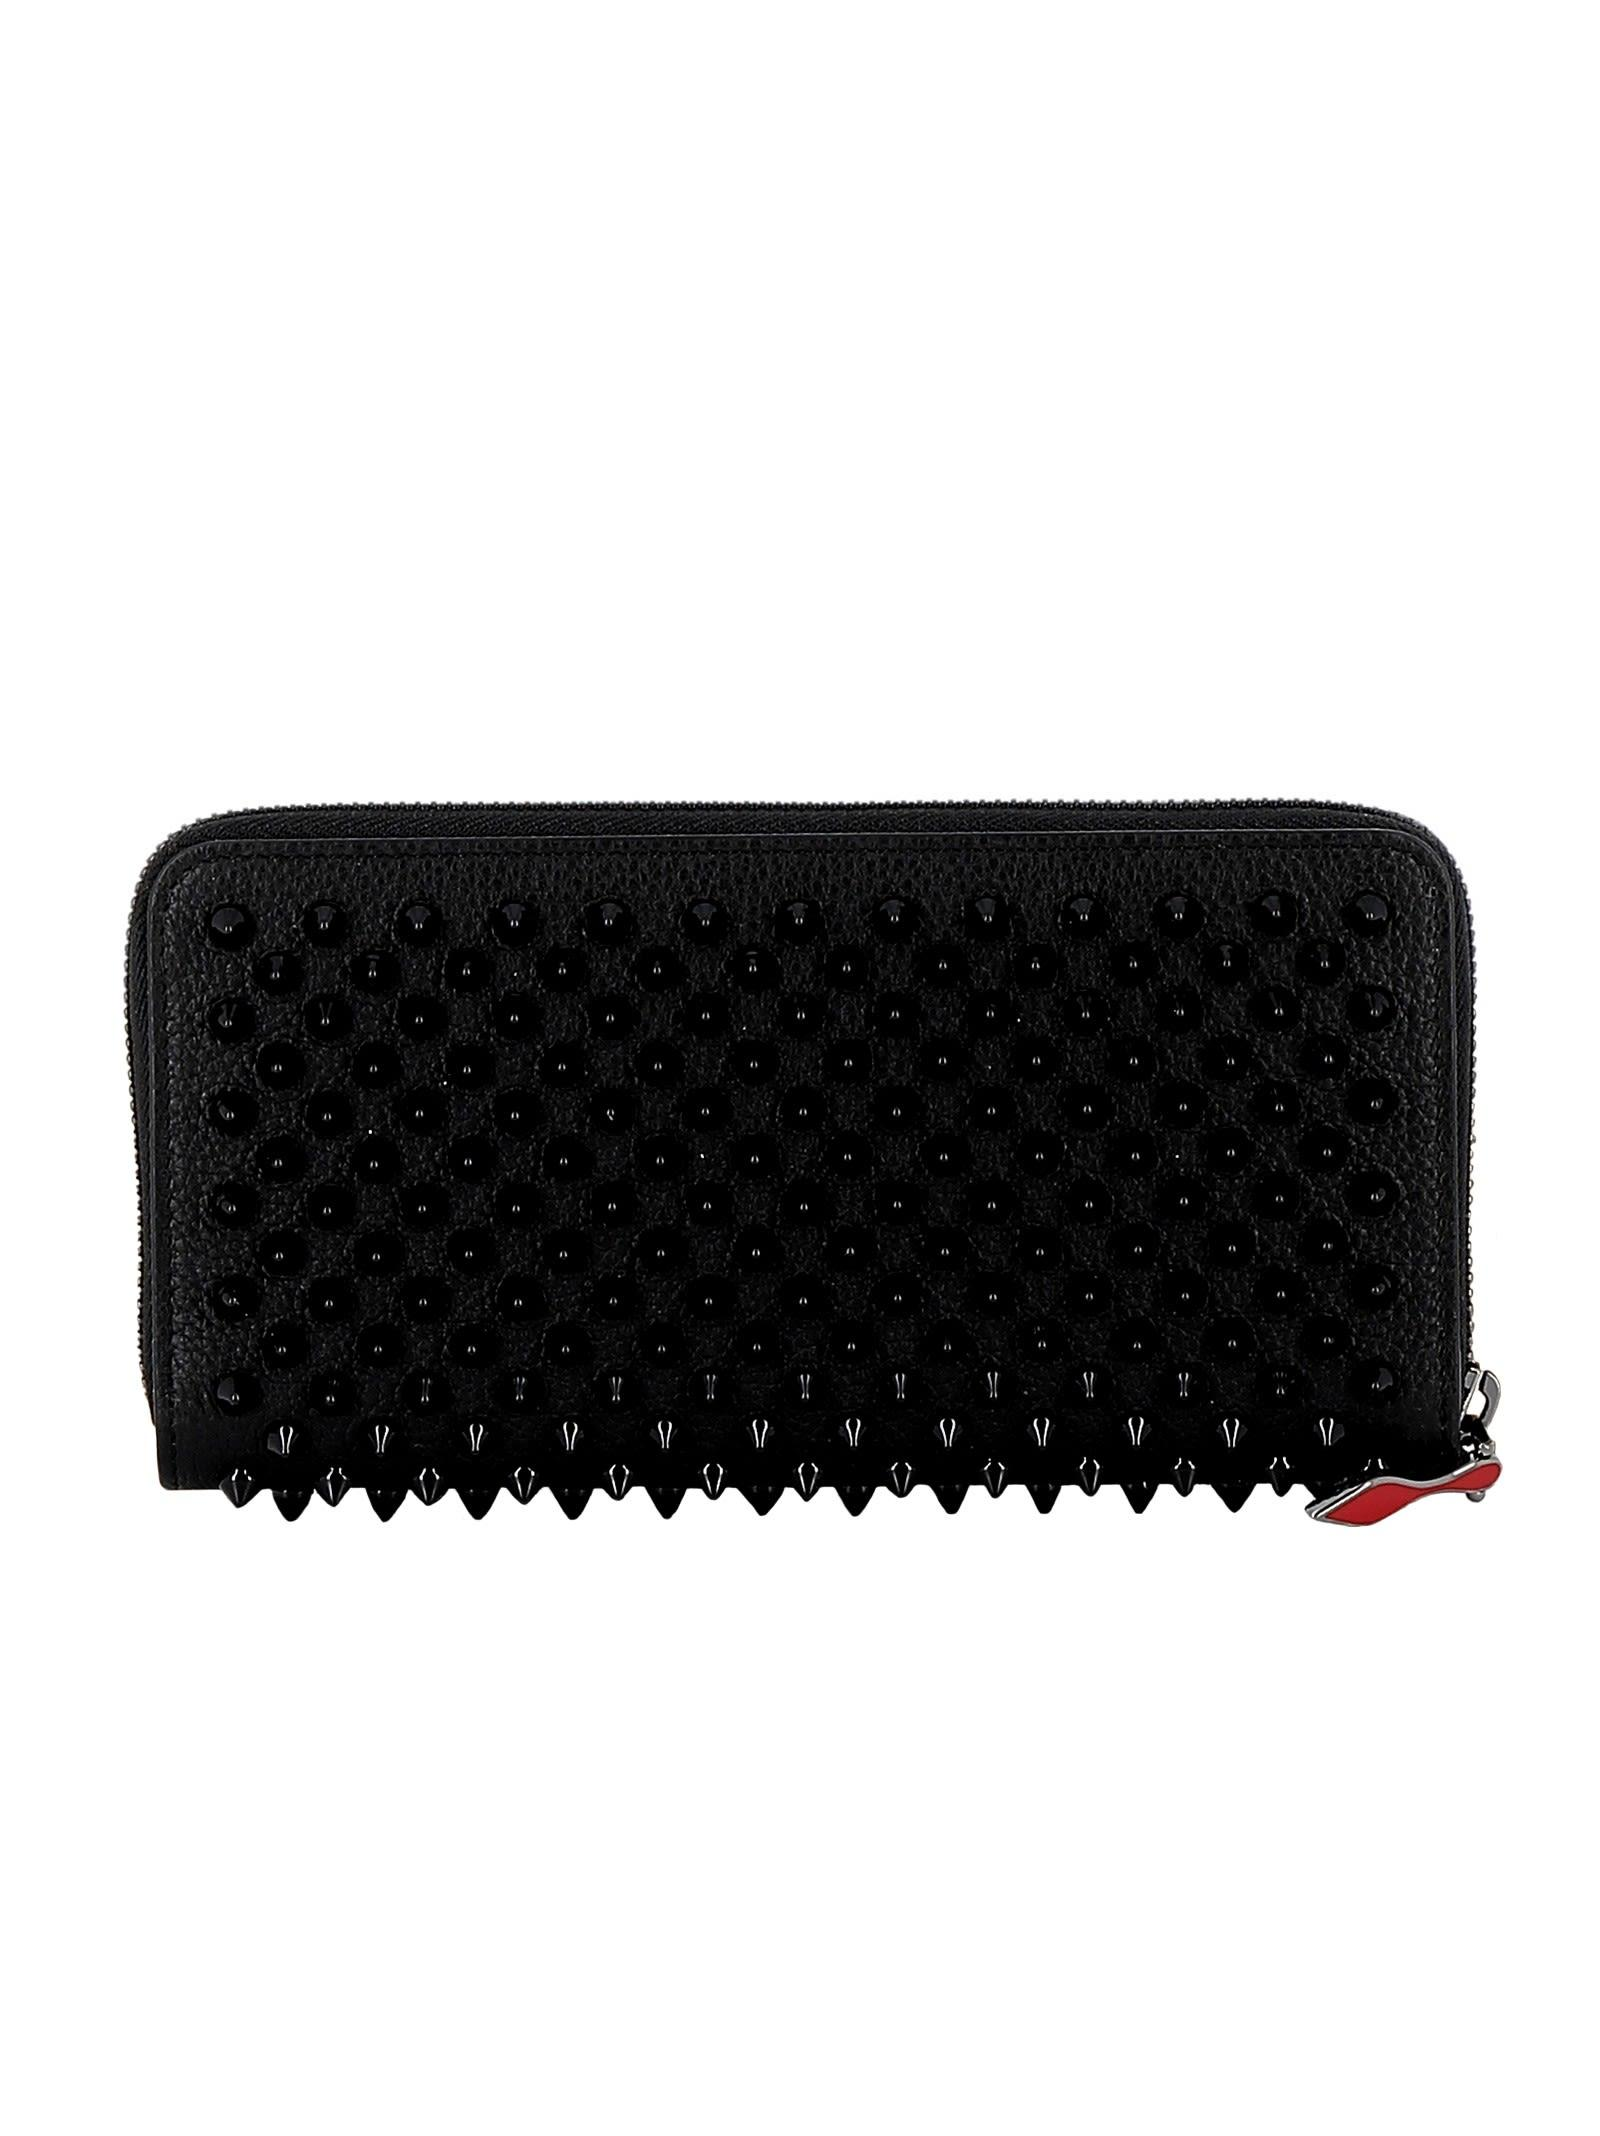 bee4ef8dcb0 Black Leather Wallet